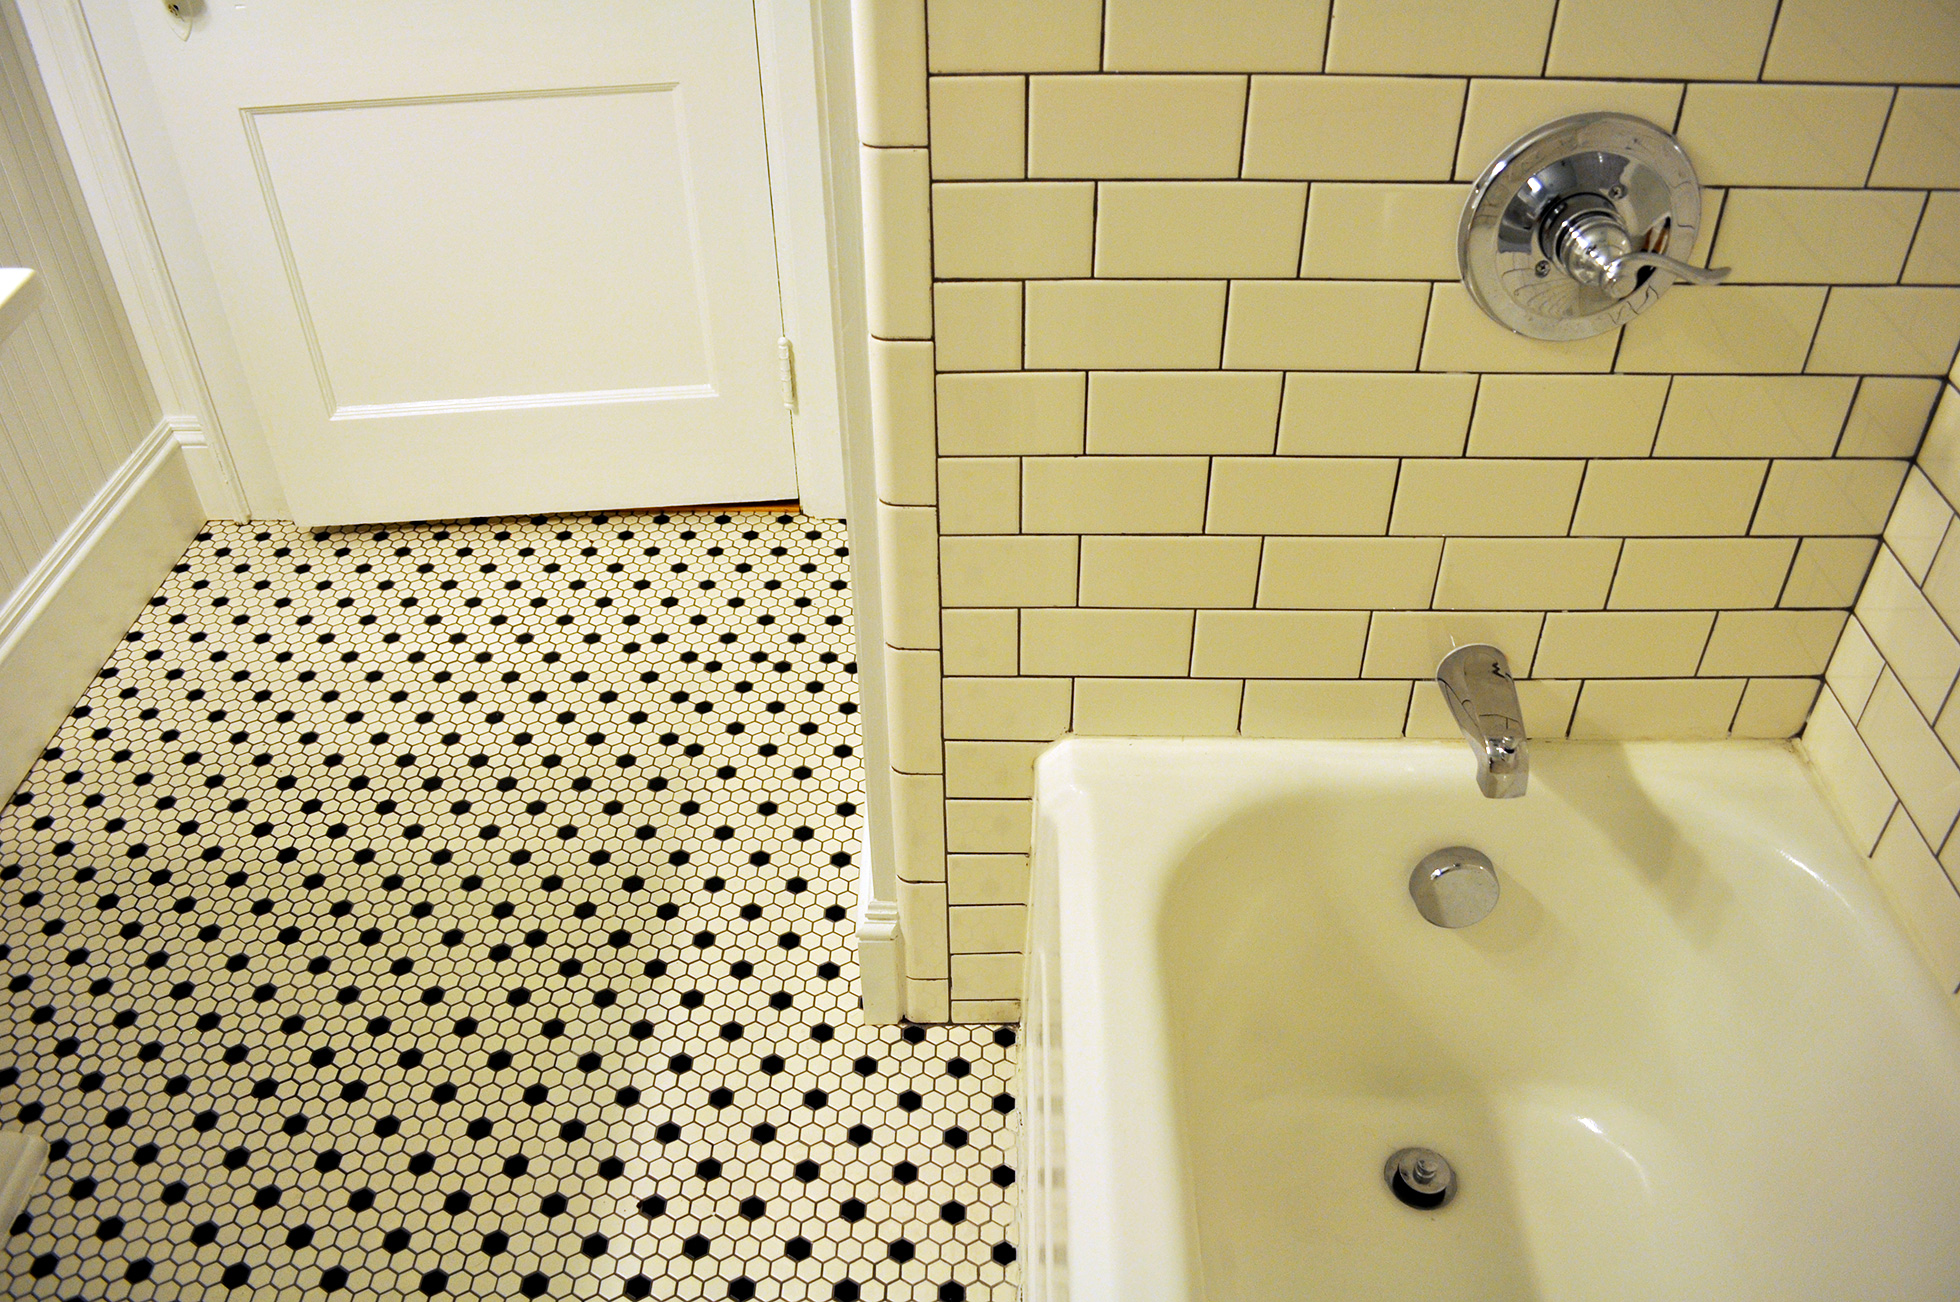 Bathrooms cover image